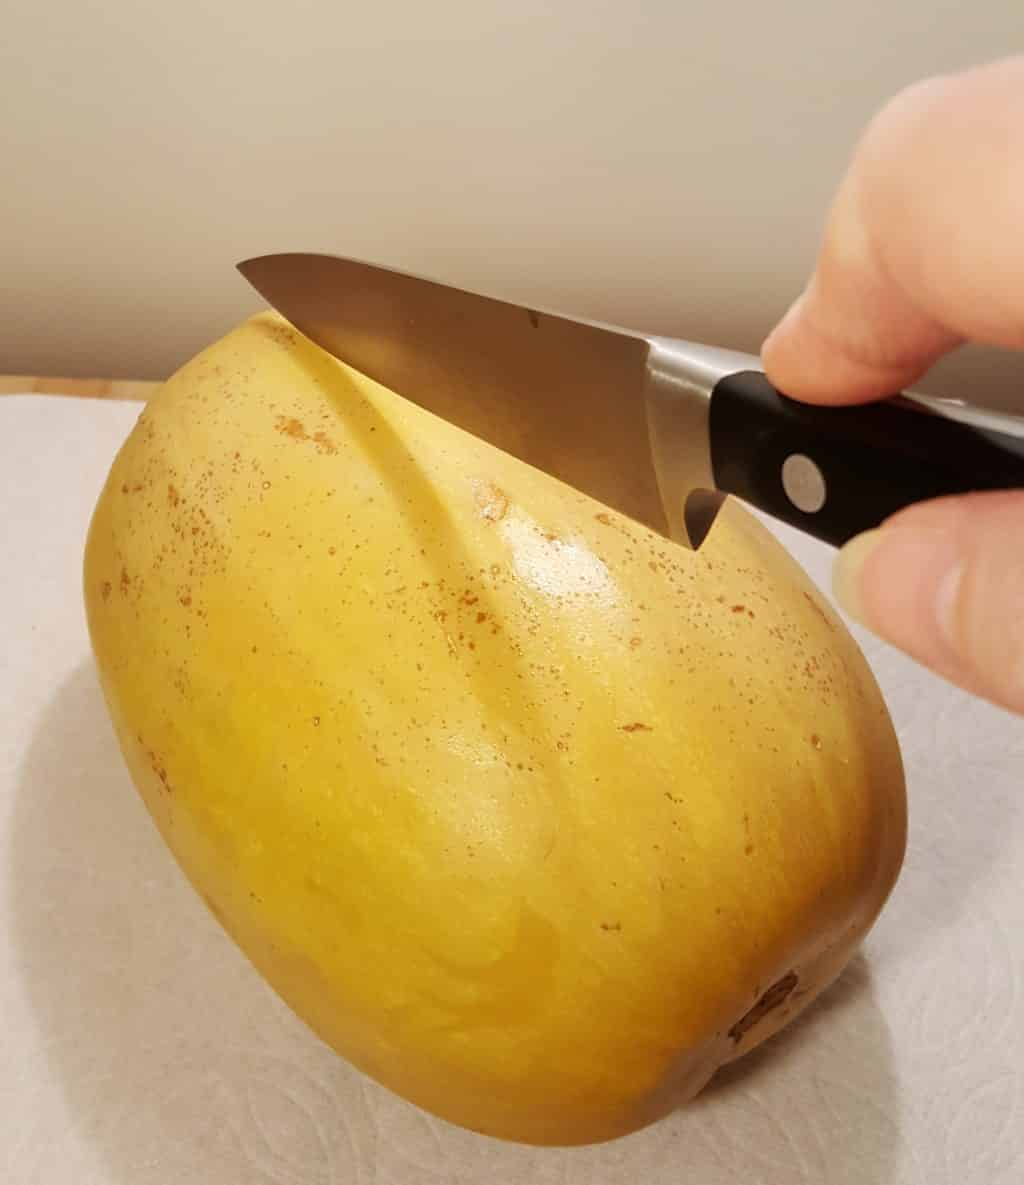 Cut Lengthwise with a Sharp Knife